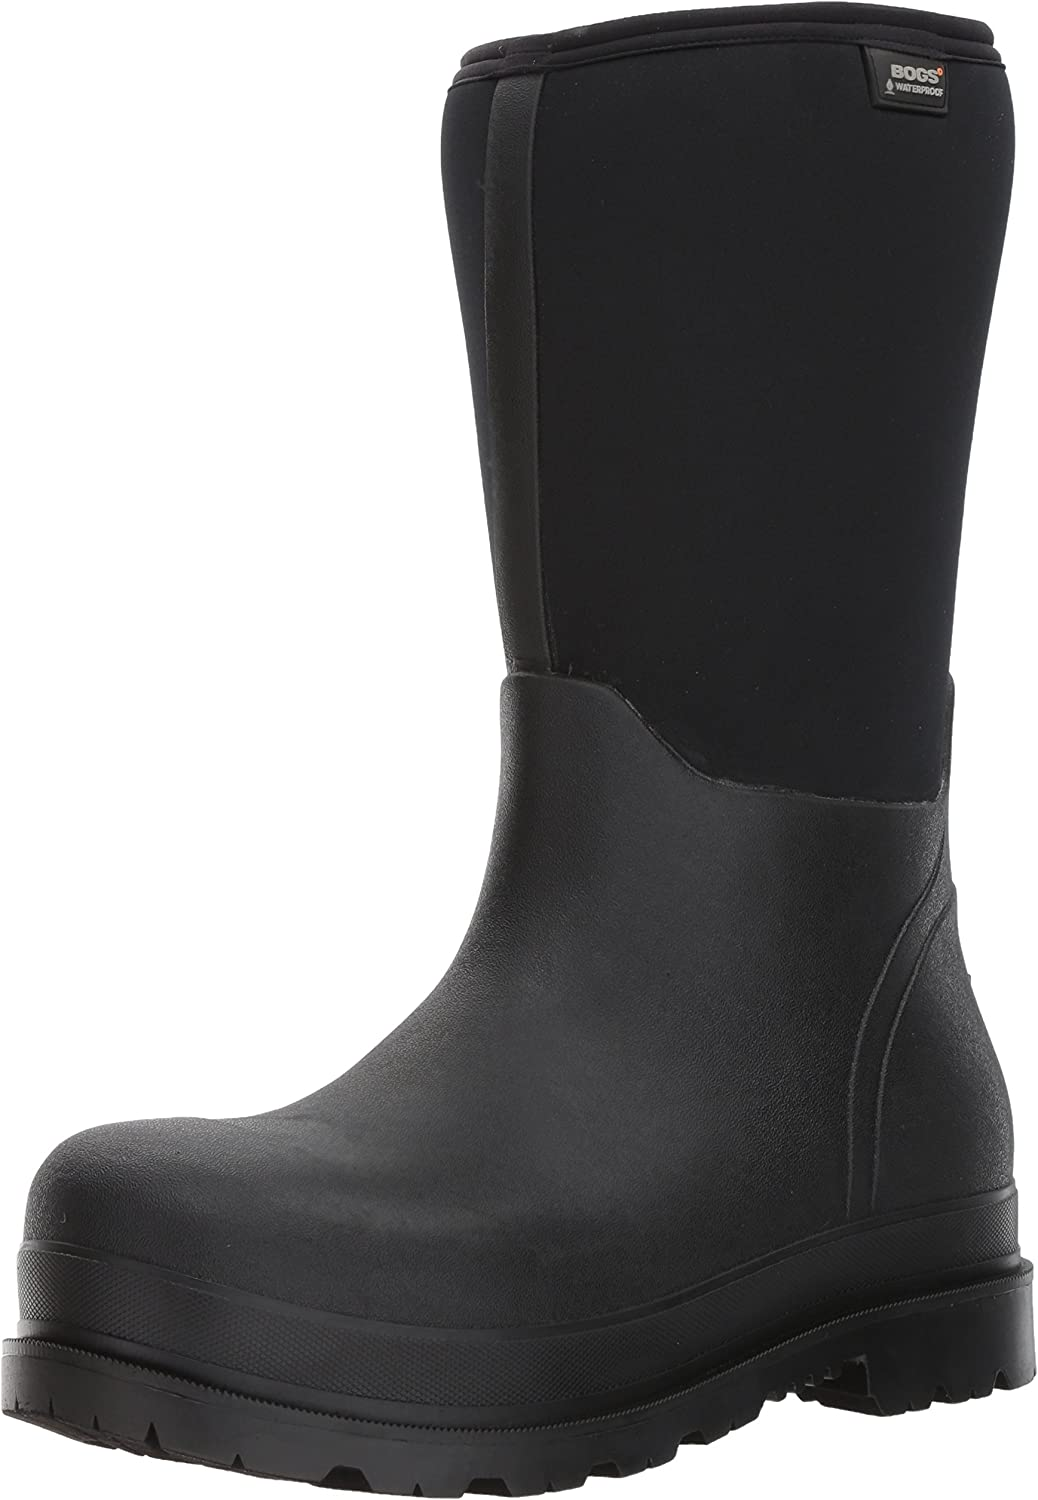 Bogs Men's Stockman Max 73% OFF Seamless Waterproof New Shipping Free Toe Insulated Composite